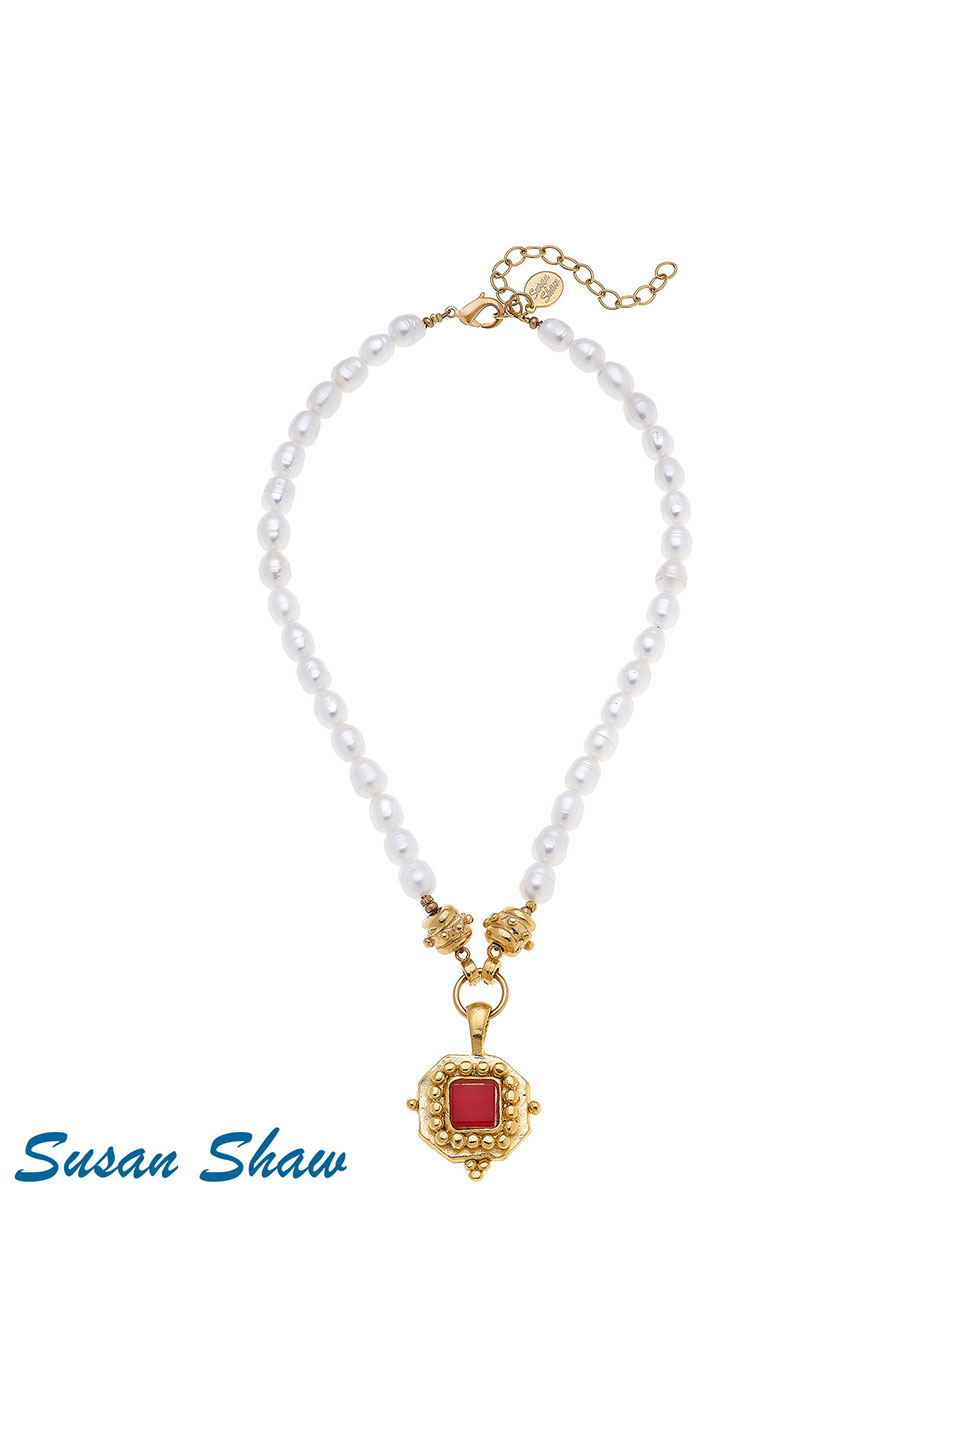 Susan Shaw Handcast Gold Square with Red French Glass on Genuine Pearl Necklace